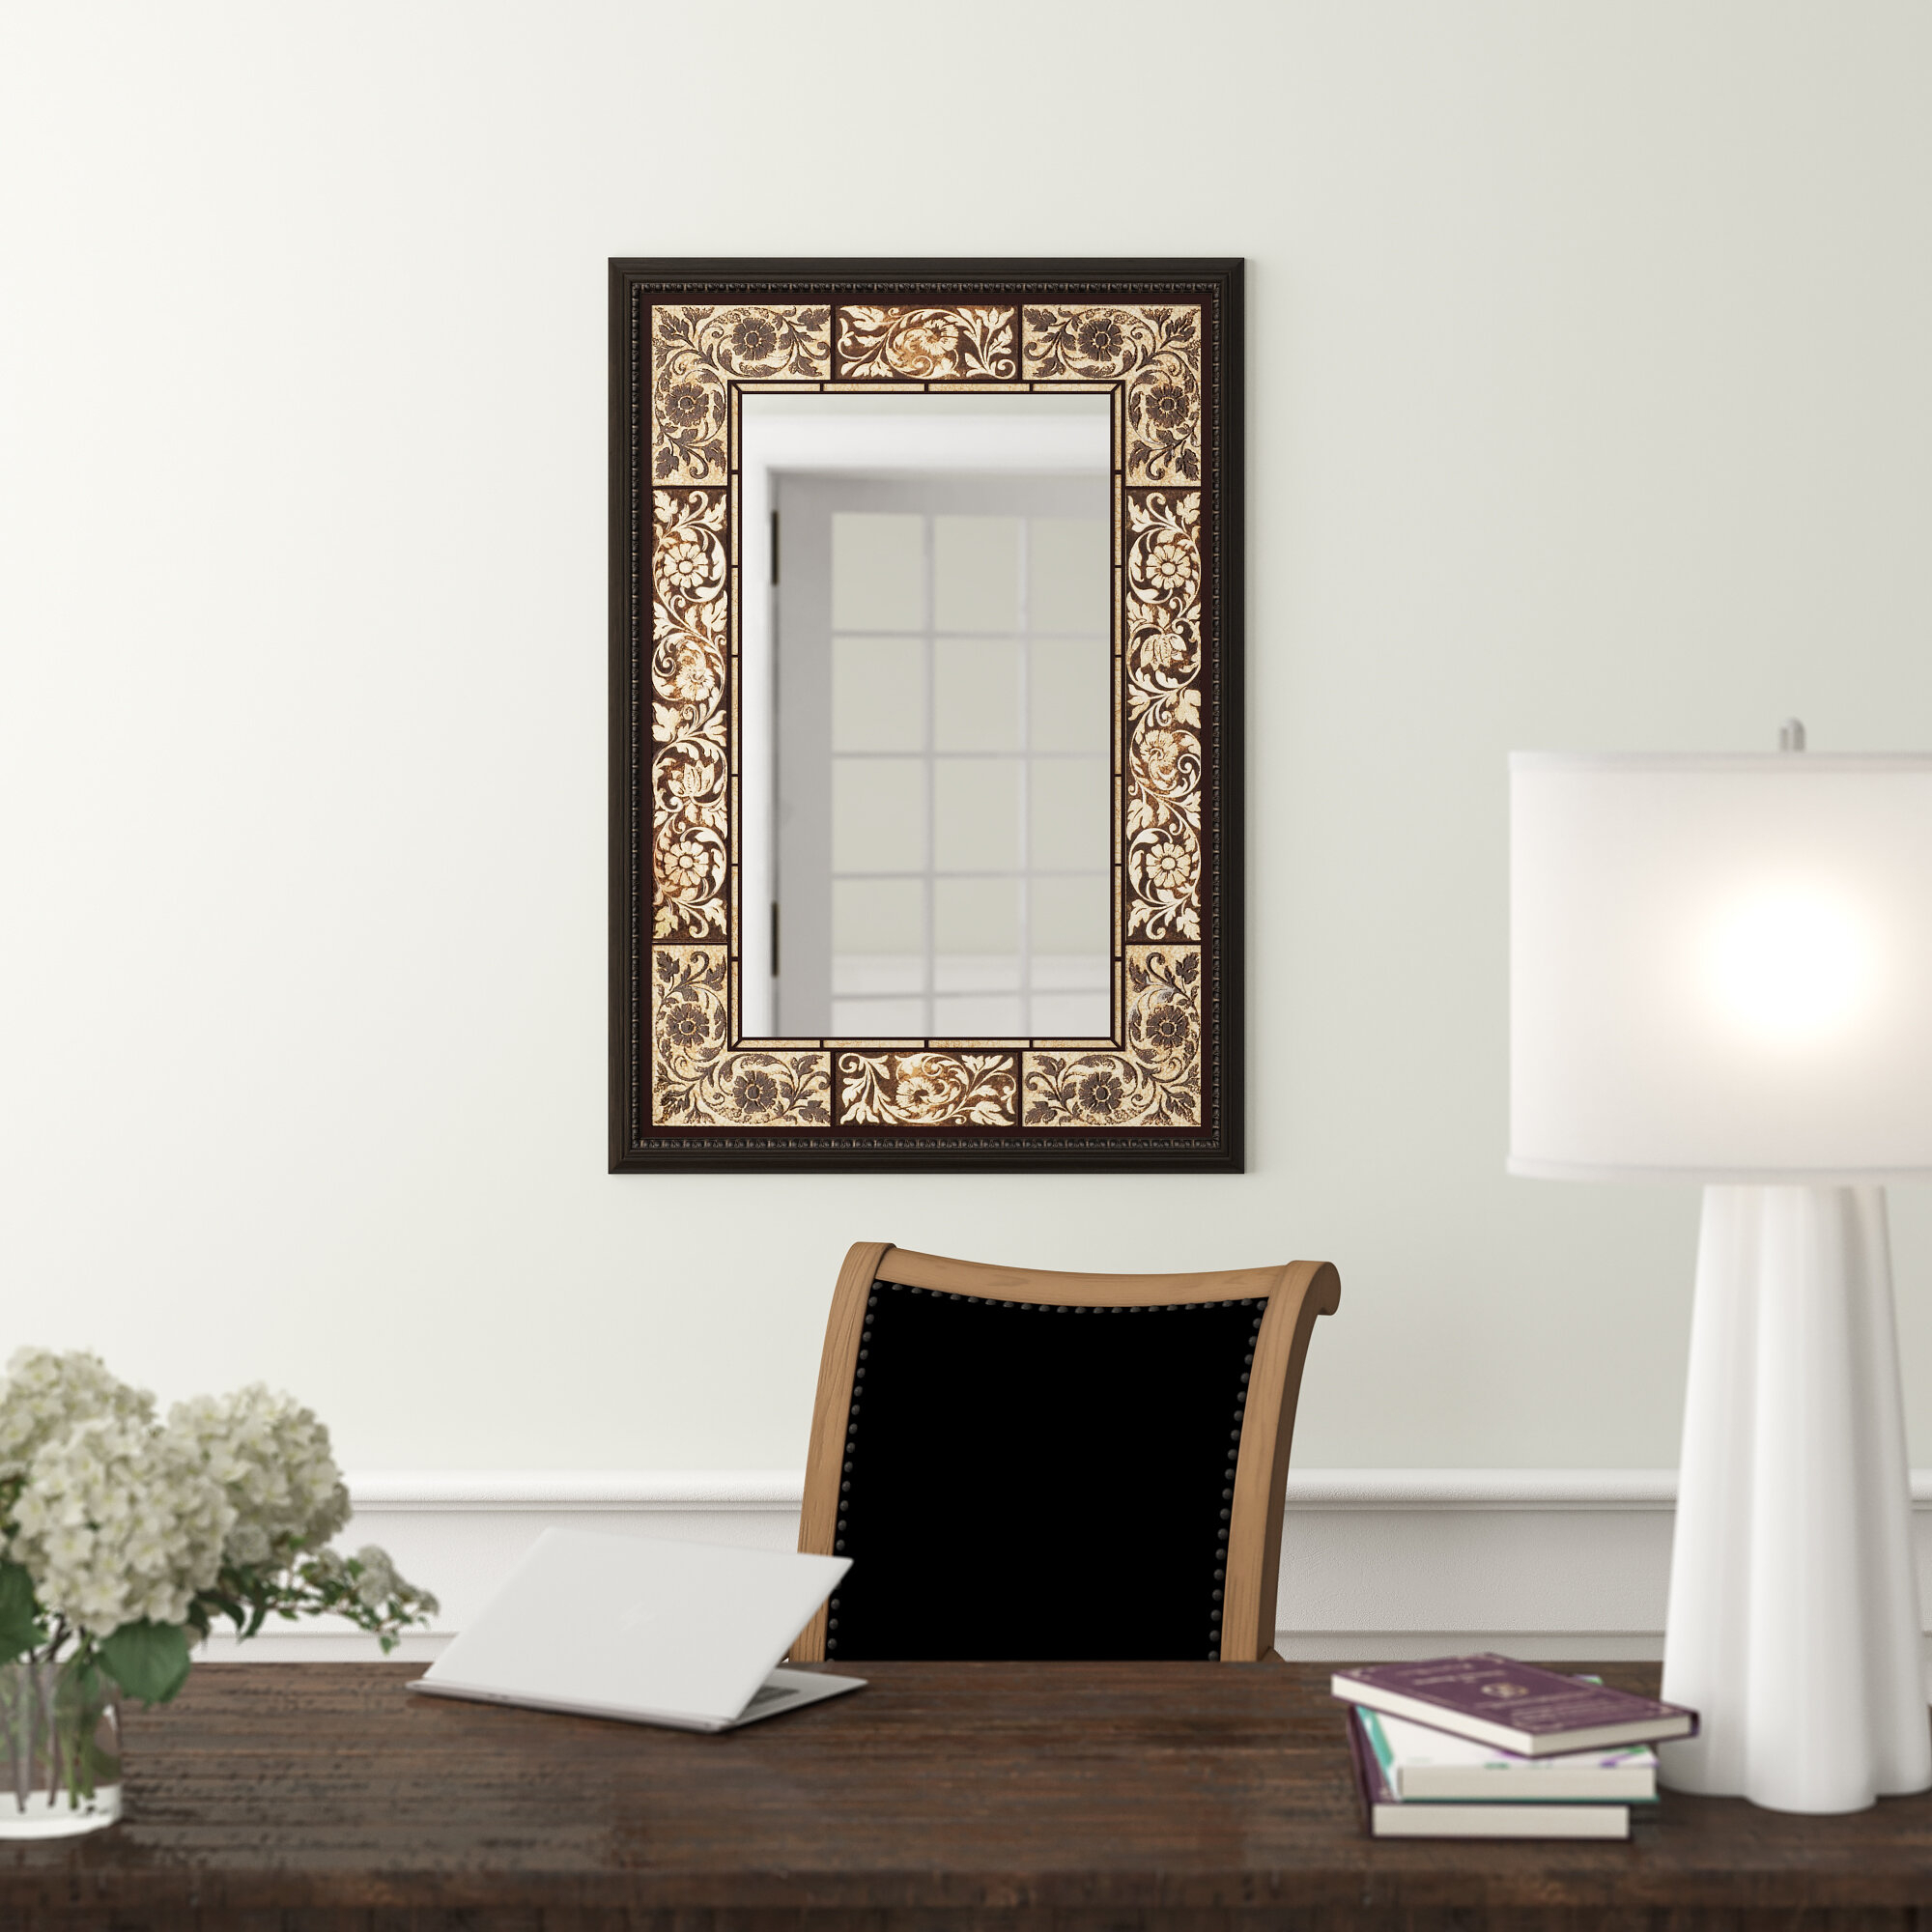 Tile Rectangle Accent Wall Mirror Throughout Rectangle Accent Wall Mirrors (View 5 of 30)